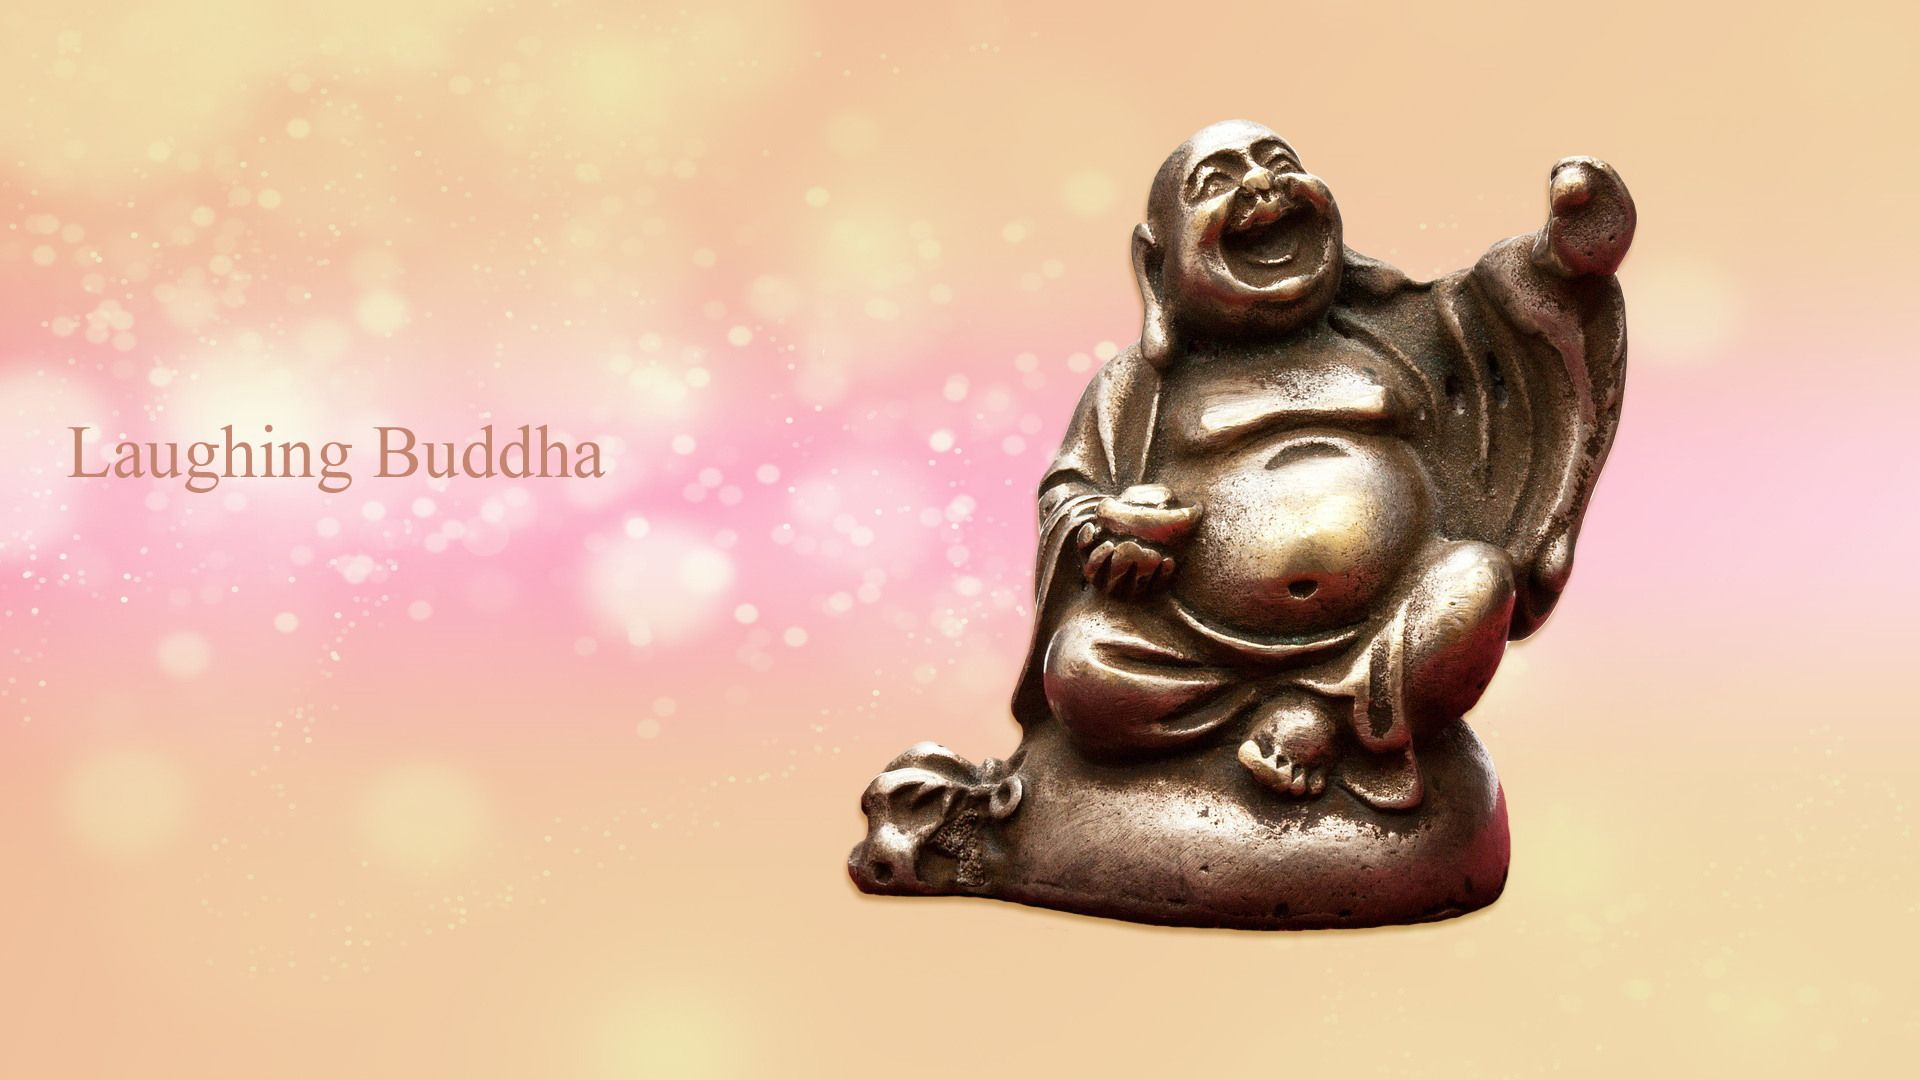 1920x1080 List of Synonyms and Antonyms of the Word: laughing buddha wallpaper